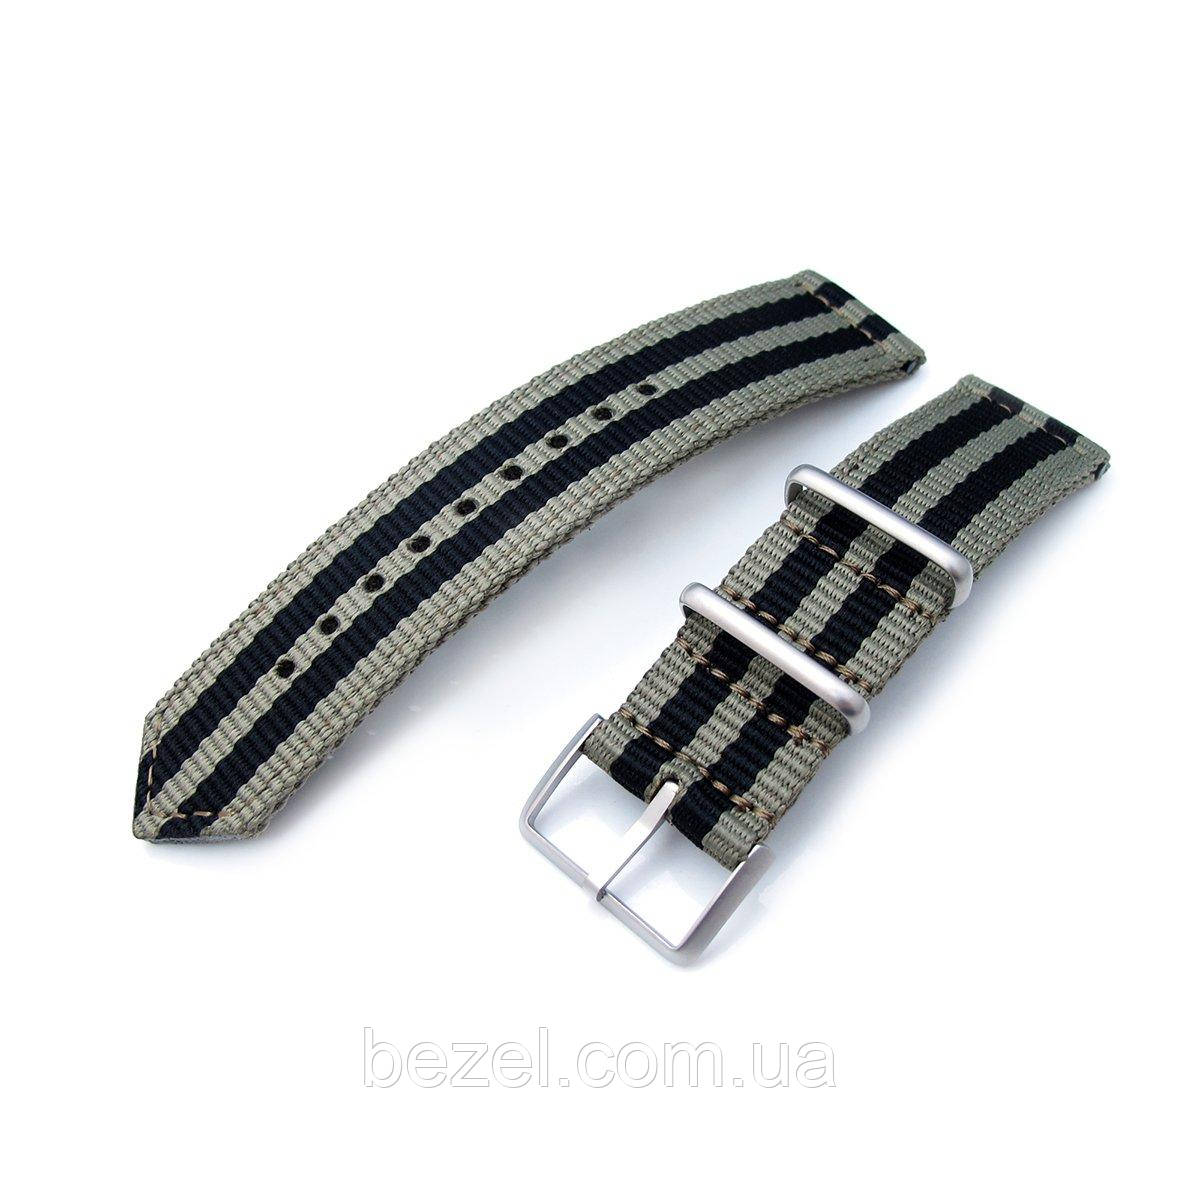 20mm, 22mm Two Piece WW2 G10 Nylon, Green & Black Stripes, Brushed Buckle